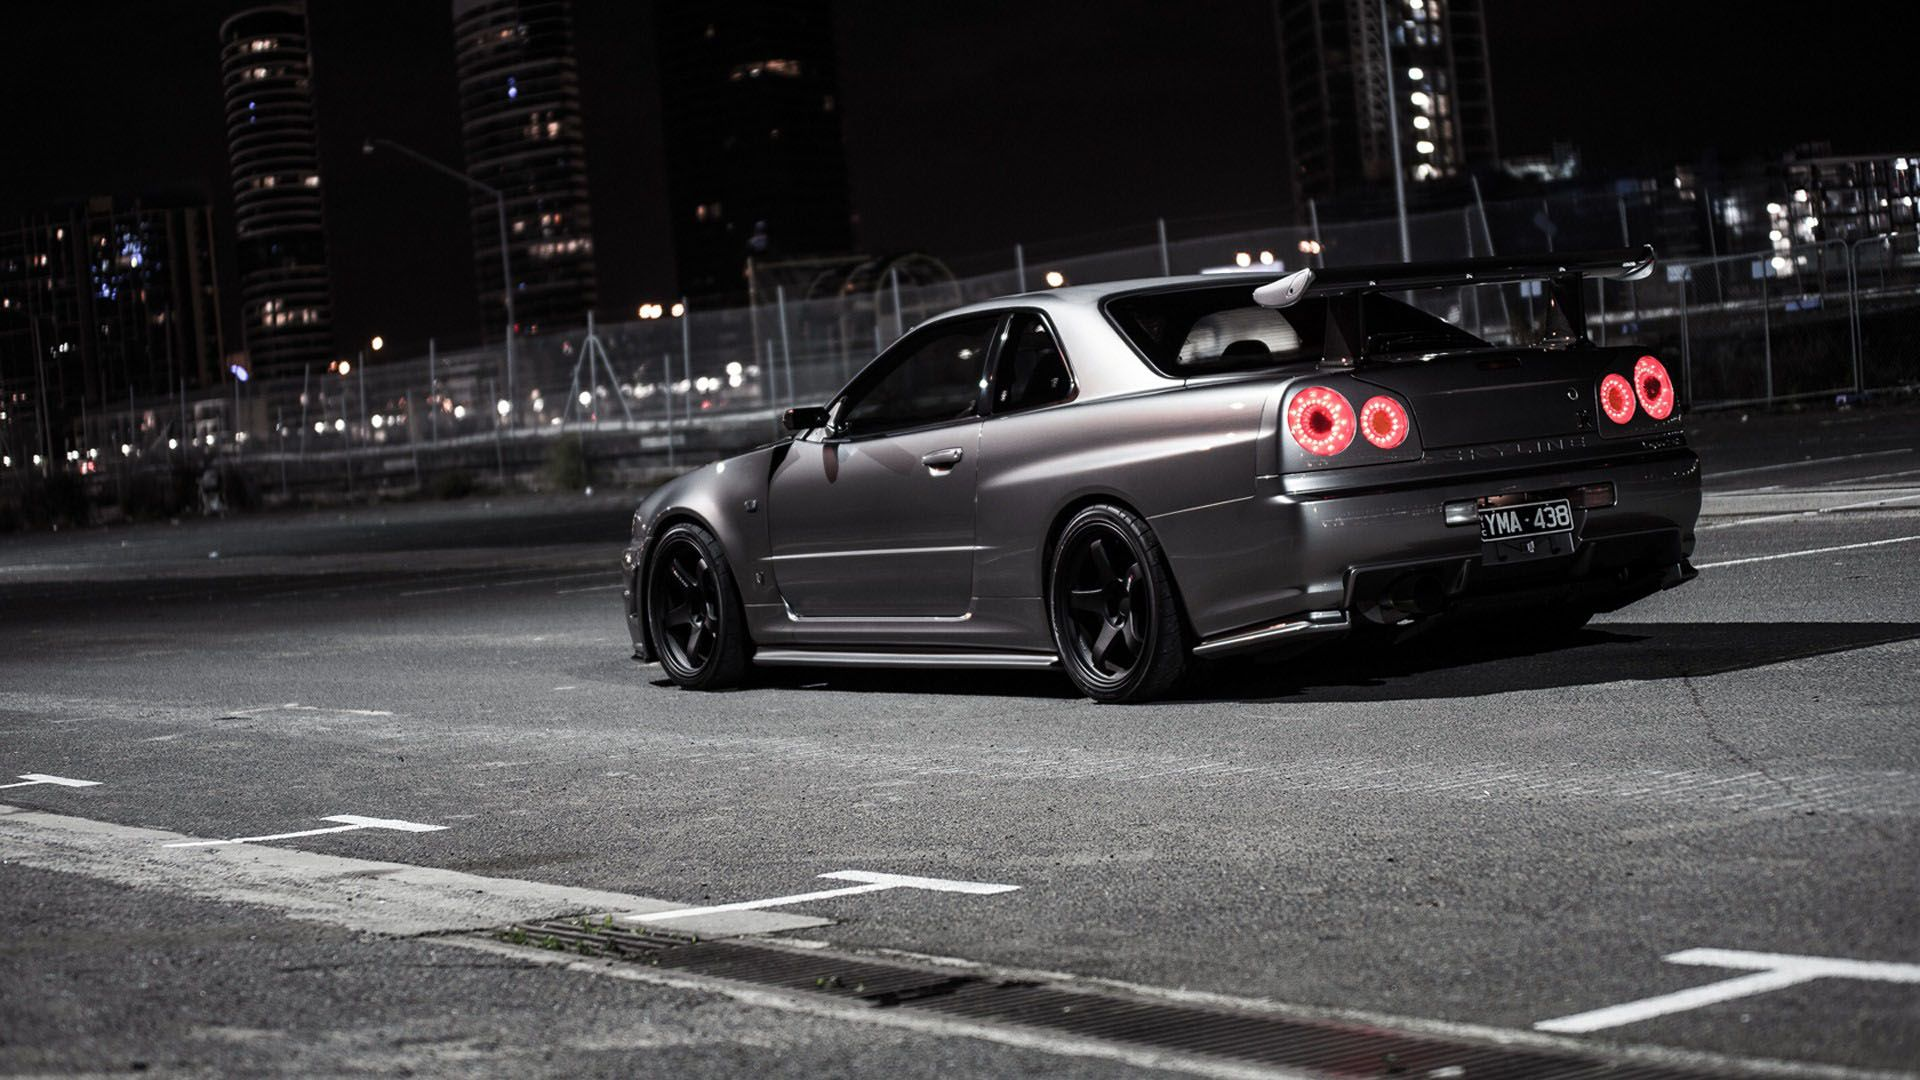 Pin By Touch Style On Jdm Import Cars Stance Nissan Skyline